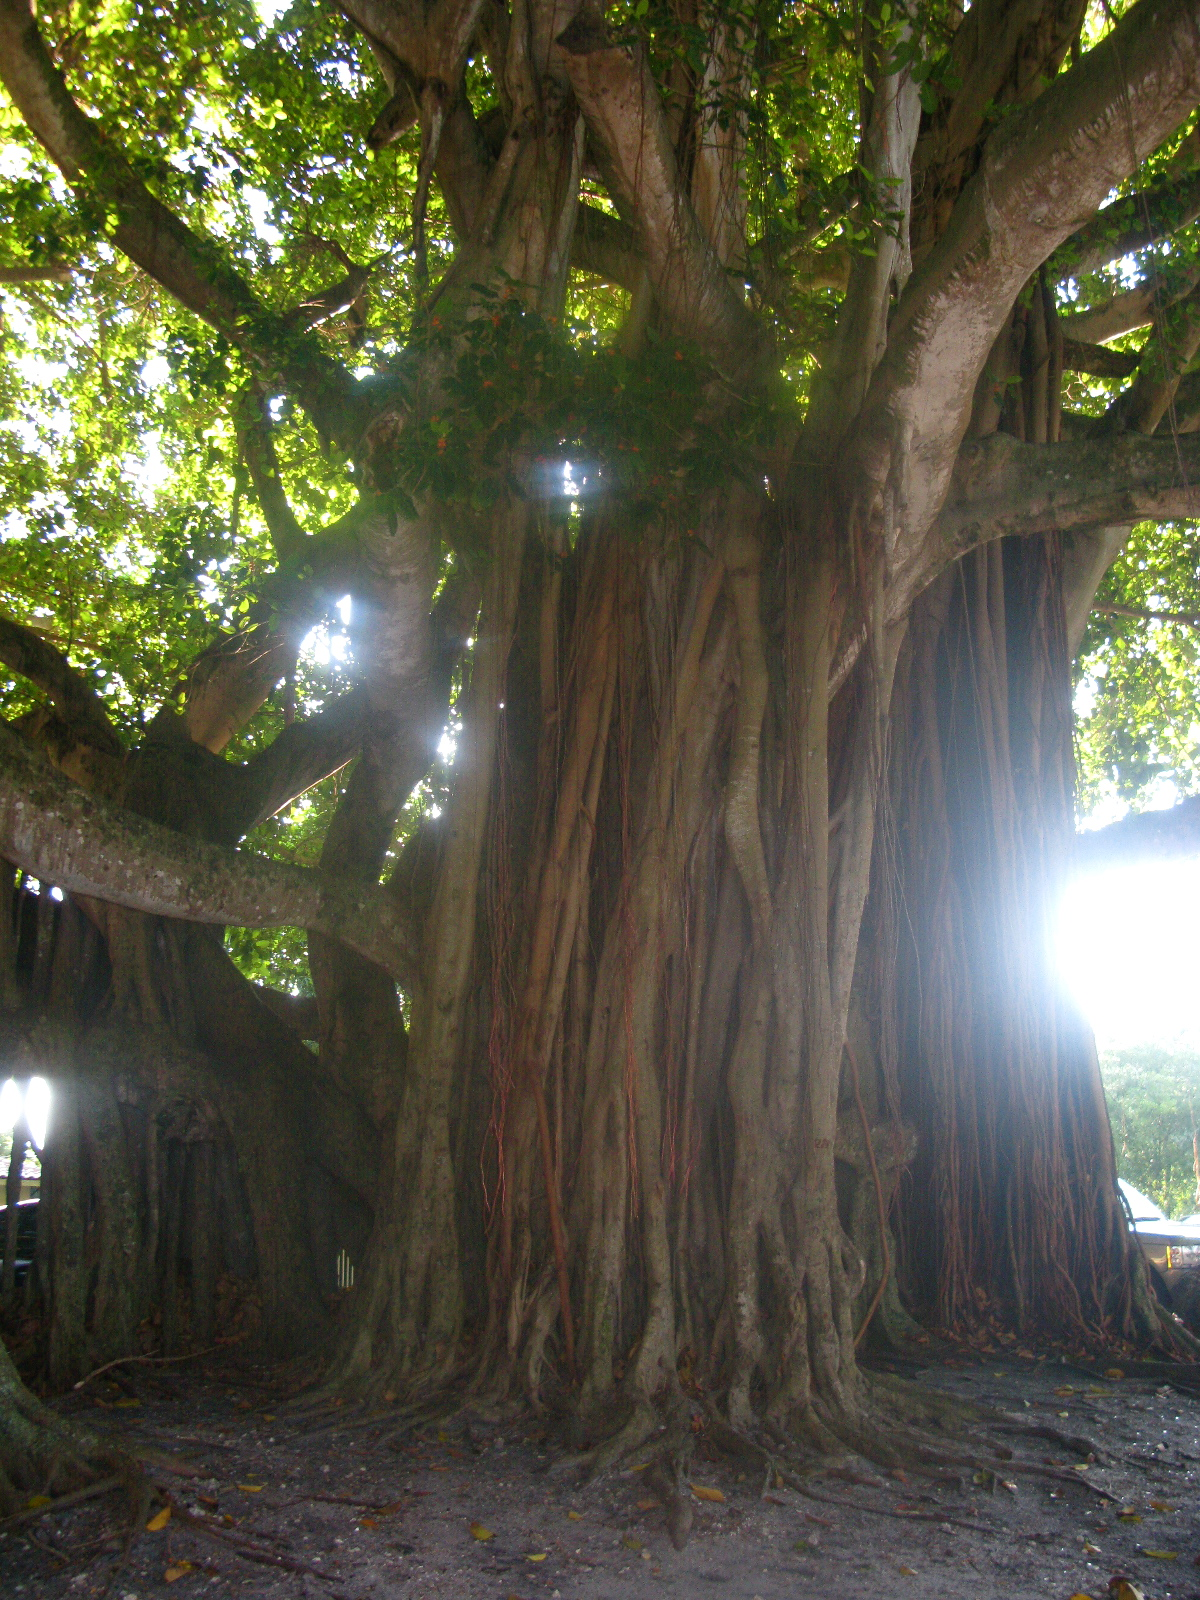 A Magical Tree in Coconut Grove